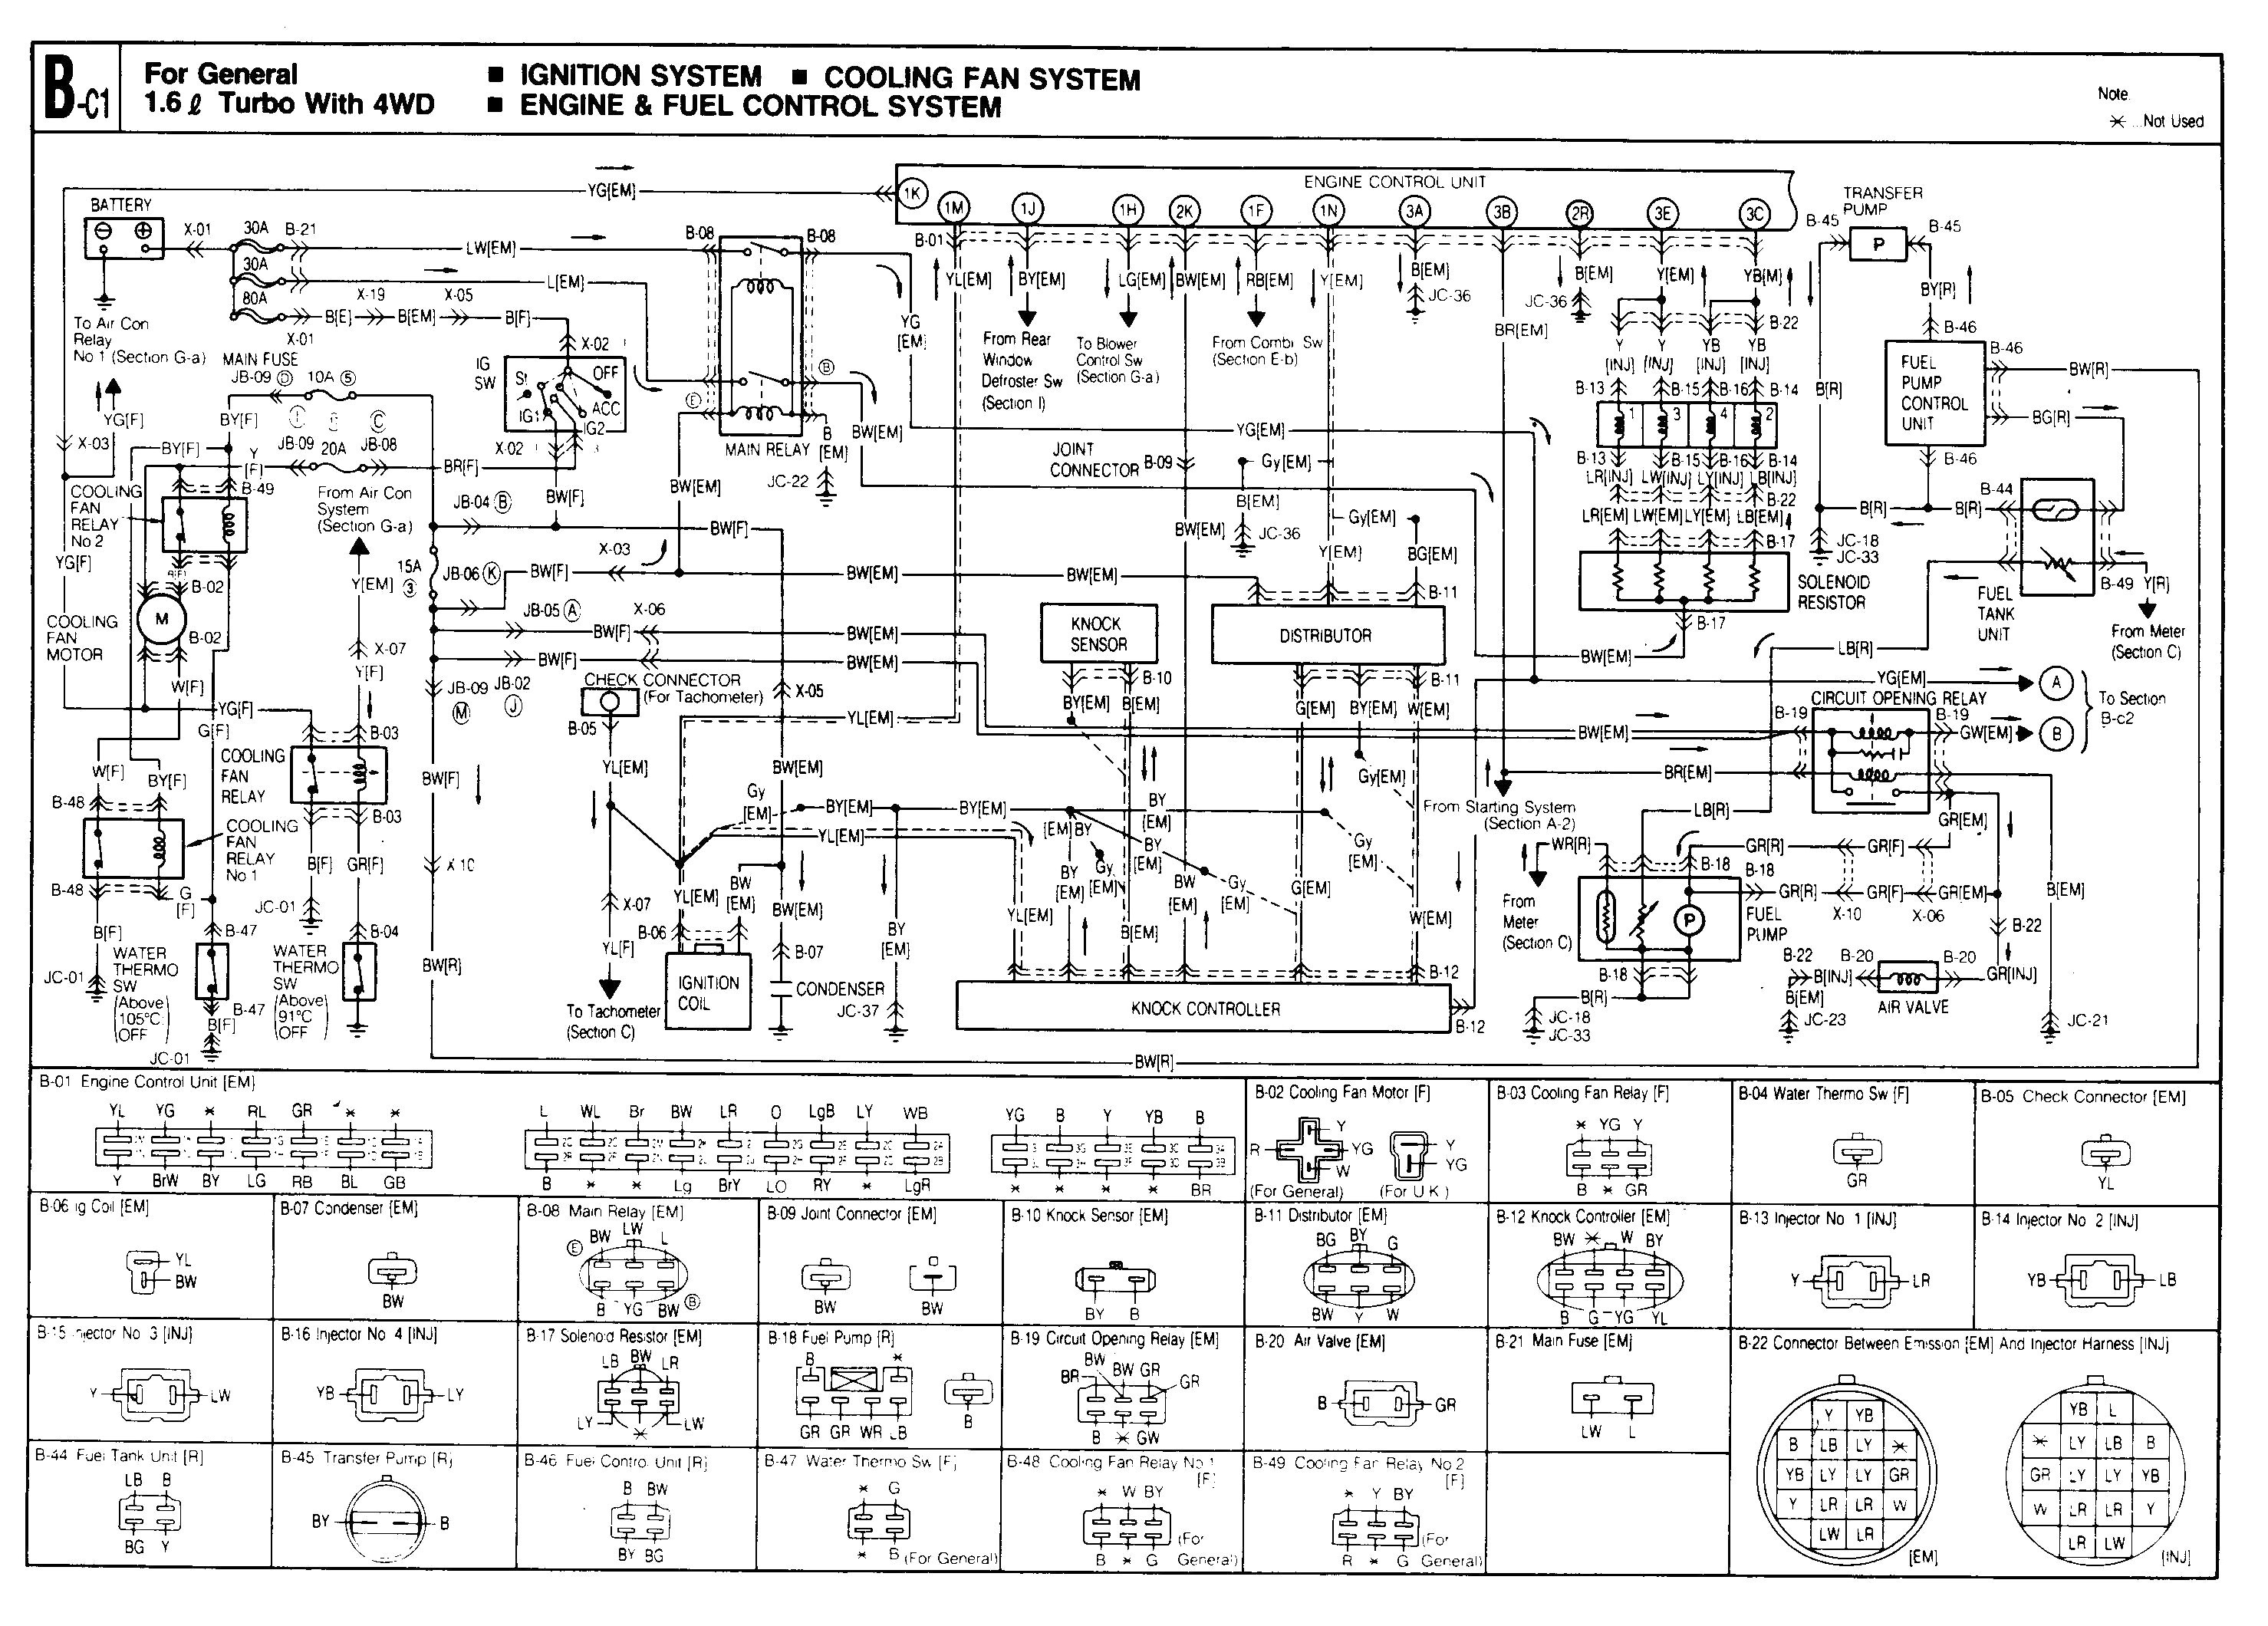 Mazda 6 wiring diagram 2009 transmission diy enthusiasts wiring mazda z5 wiring diagram schematics wiring diagrams u2022 rh momnt co 2008 mazda 3 ac wiring diagram mazda stereo wiring diagram cheapraybanclubmaster Images